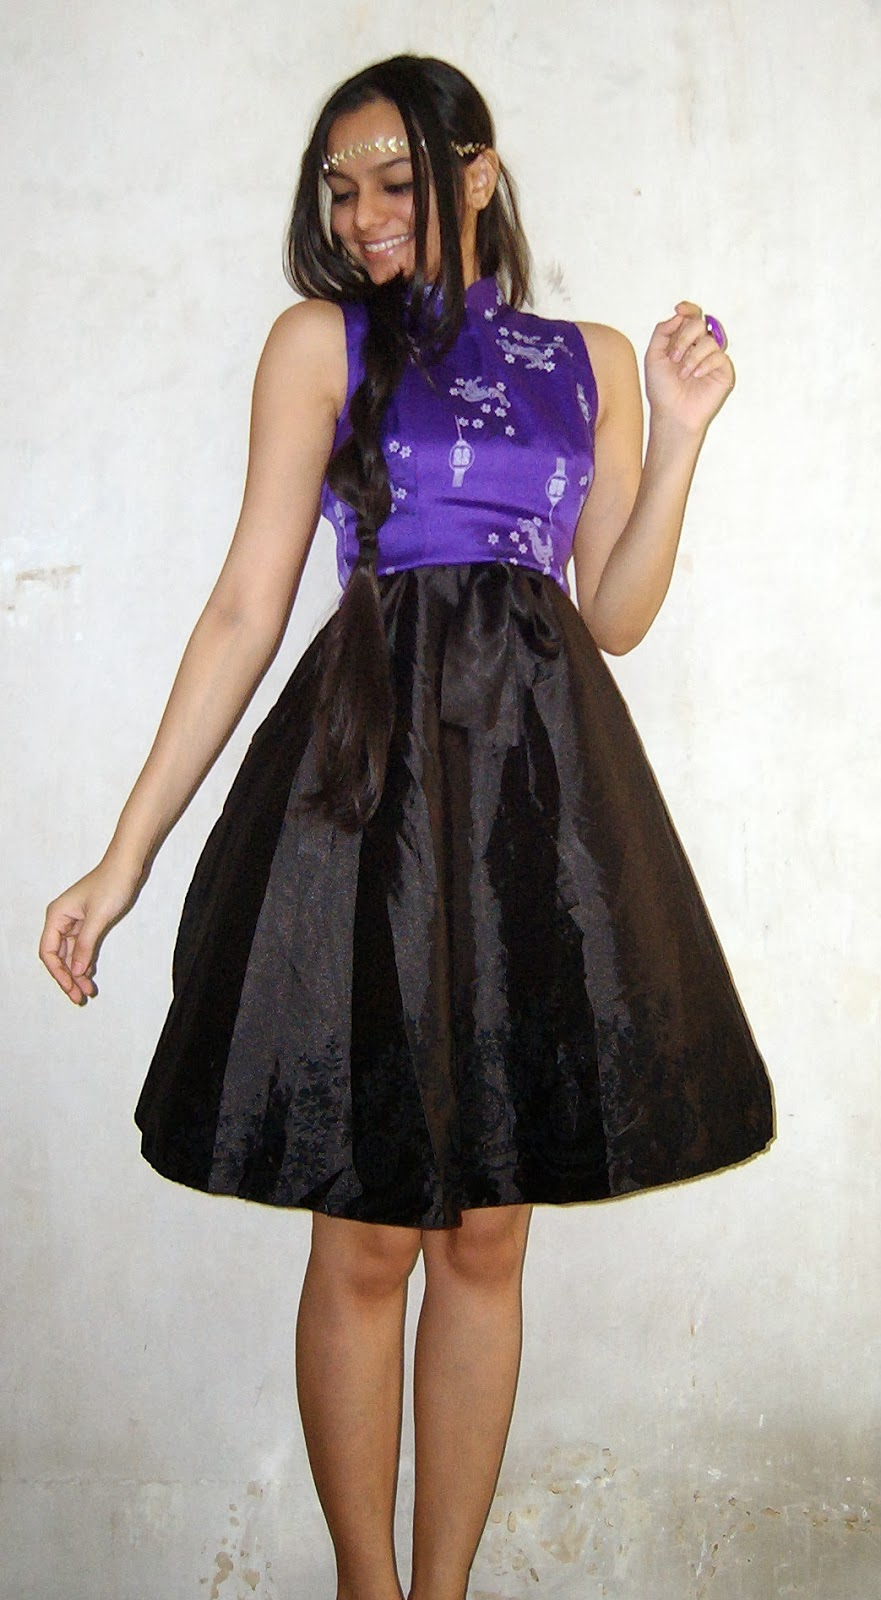 party outfits, purple, black circle skirt, headband, shiny clothes, indian fashion blogger, crop tops, how to wear crop tops in india